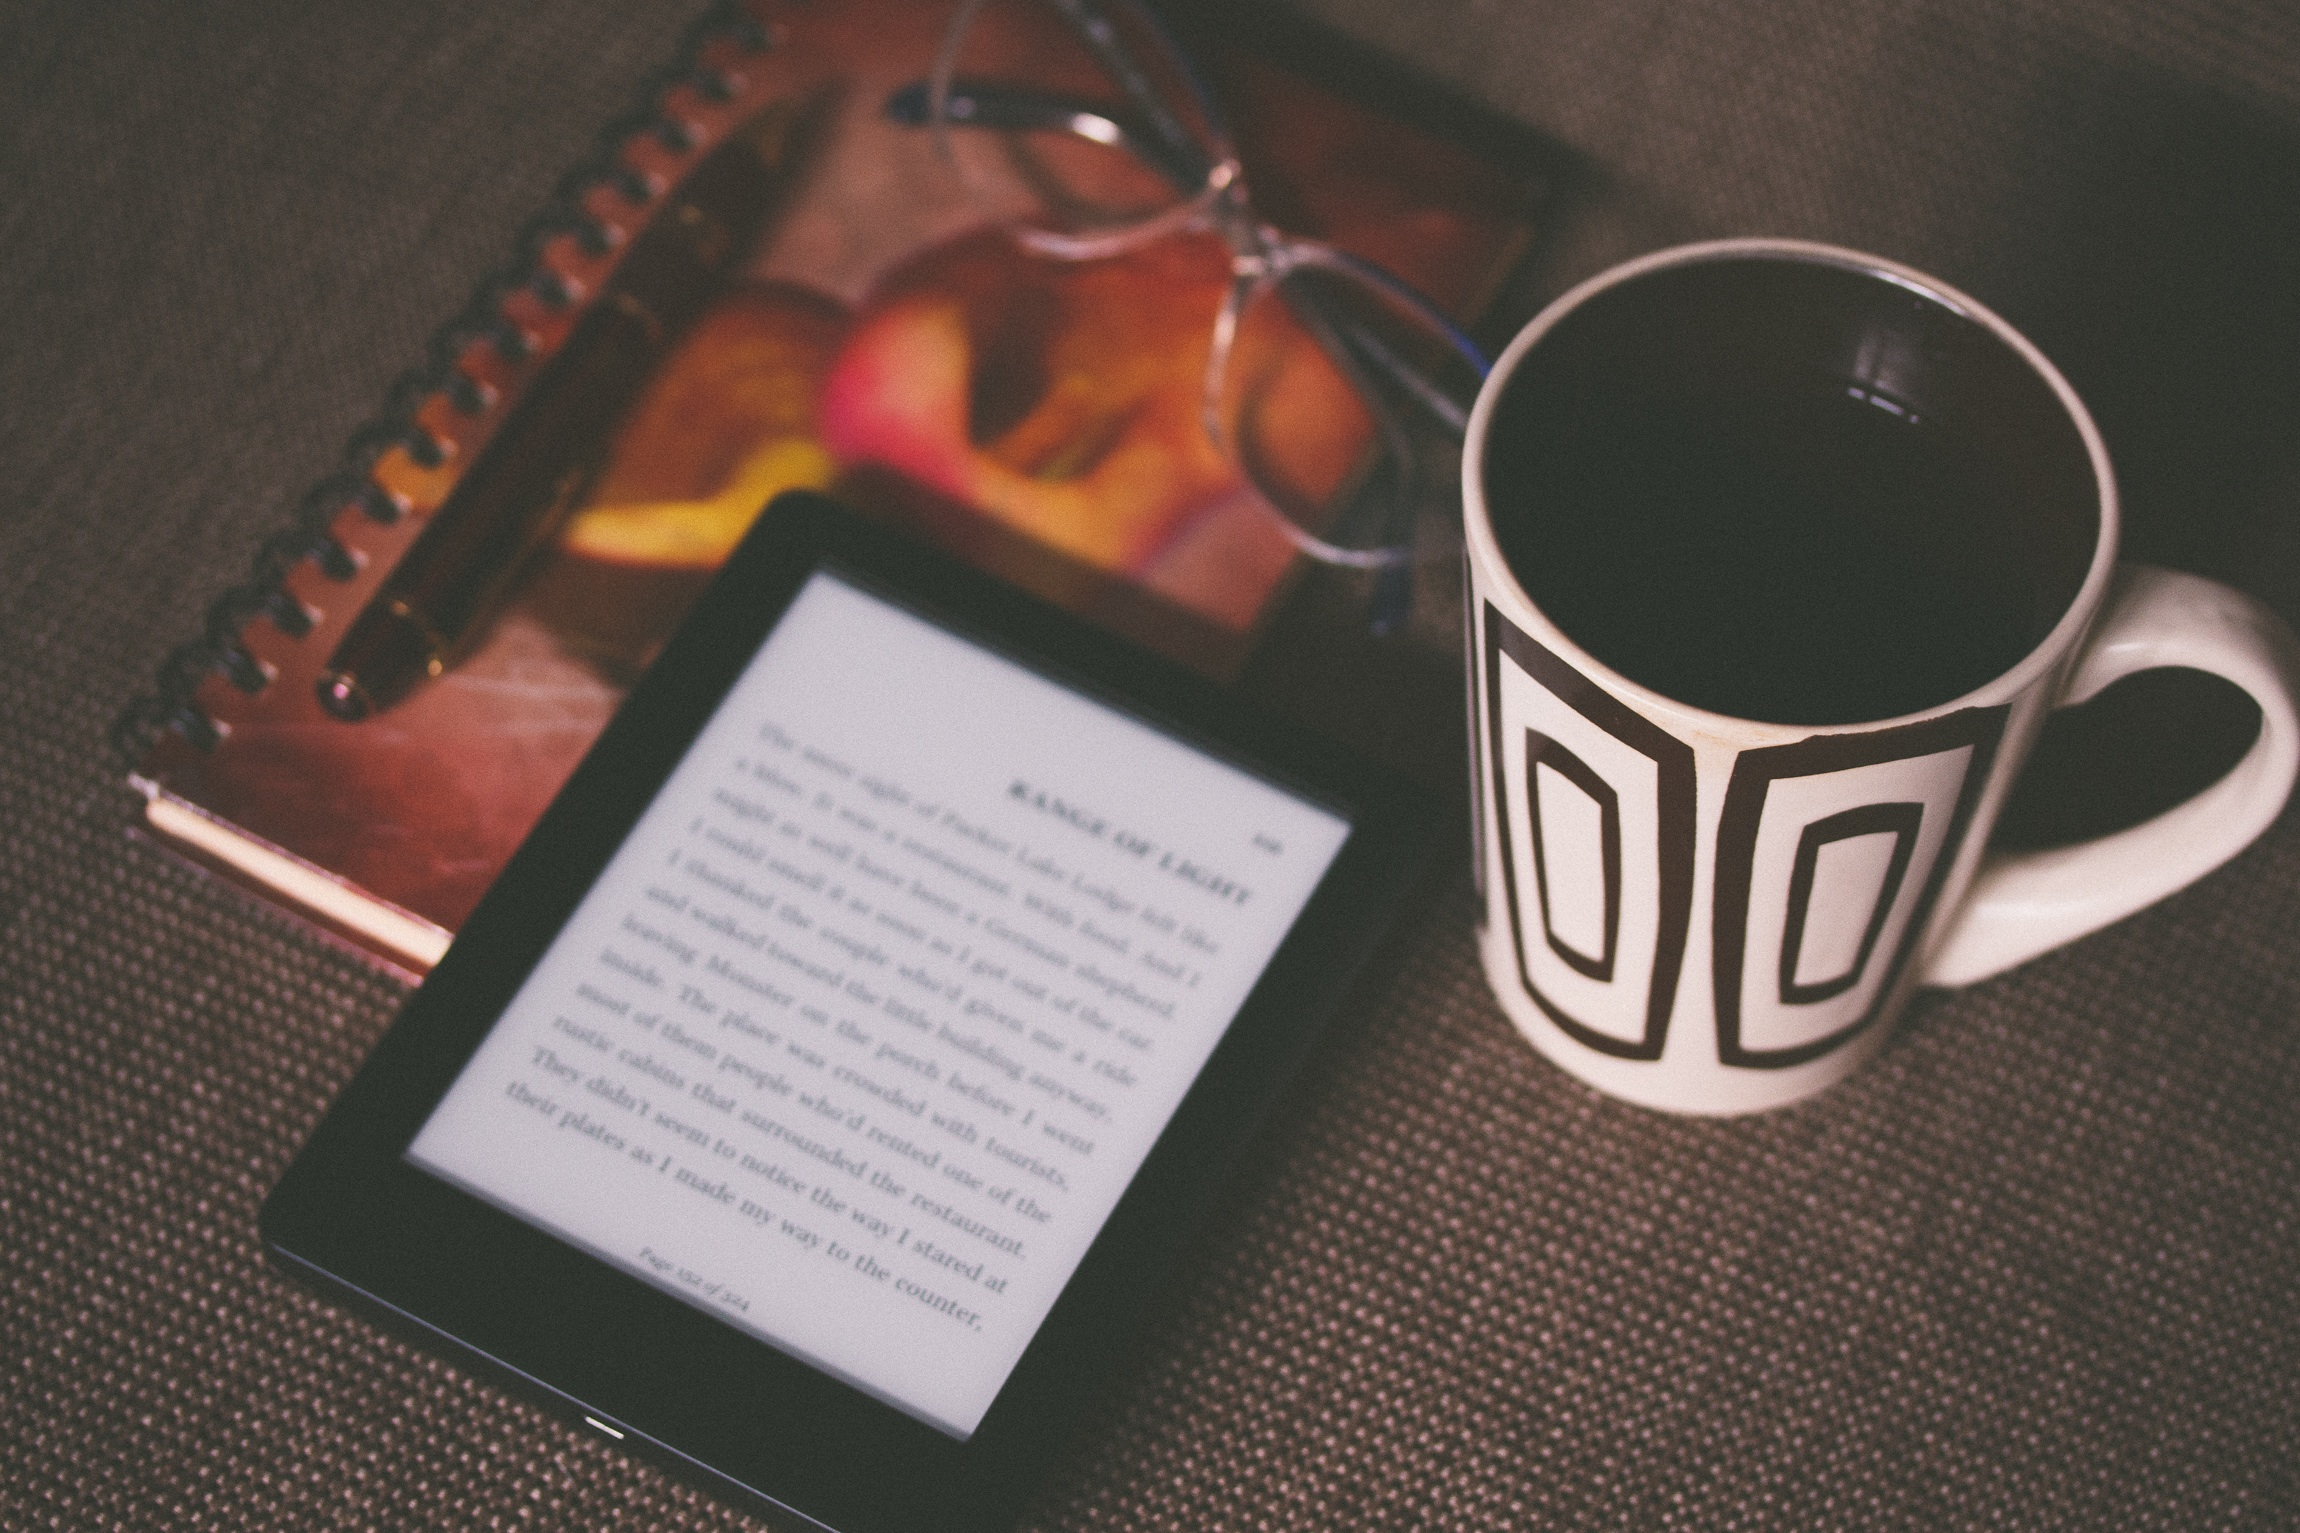 It's great for authors too. Photo by  Aliis Sinisalu CC0 1.0